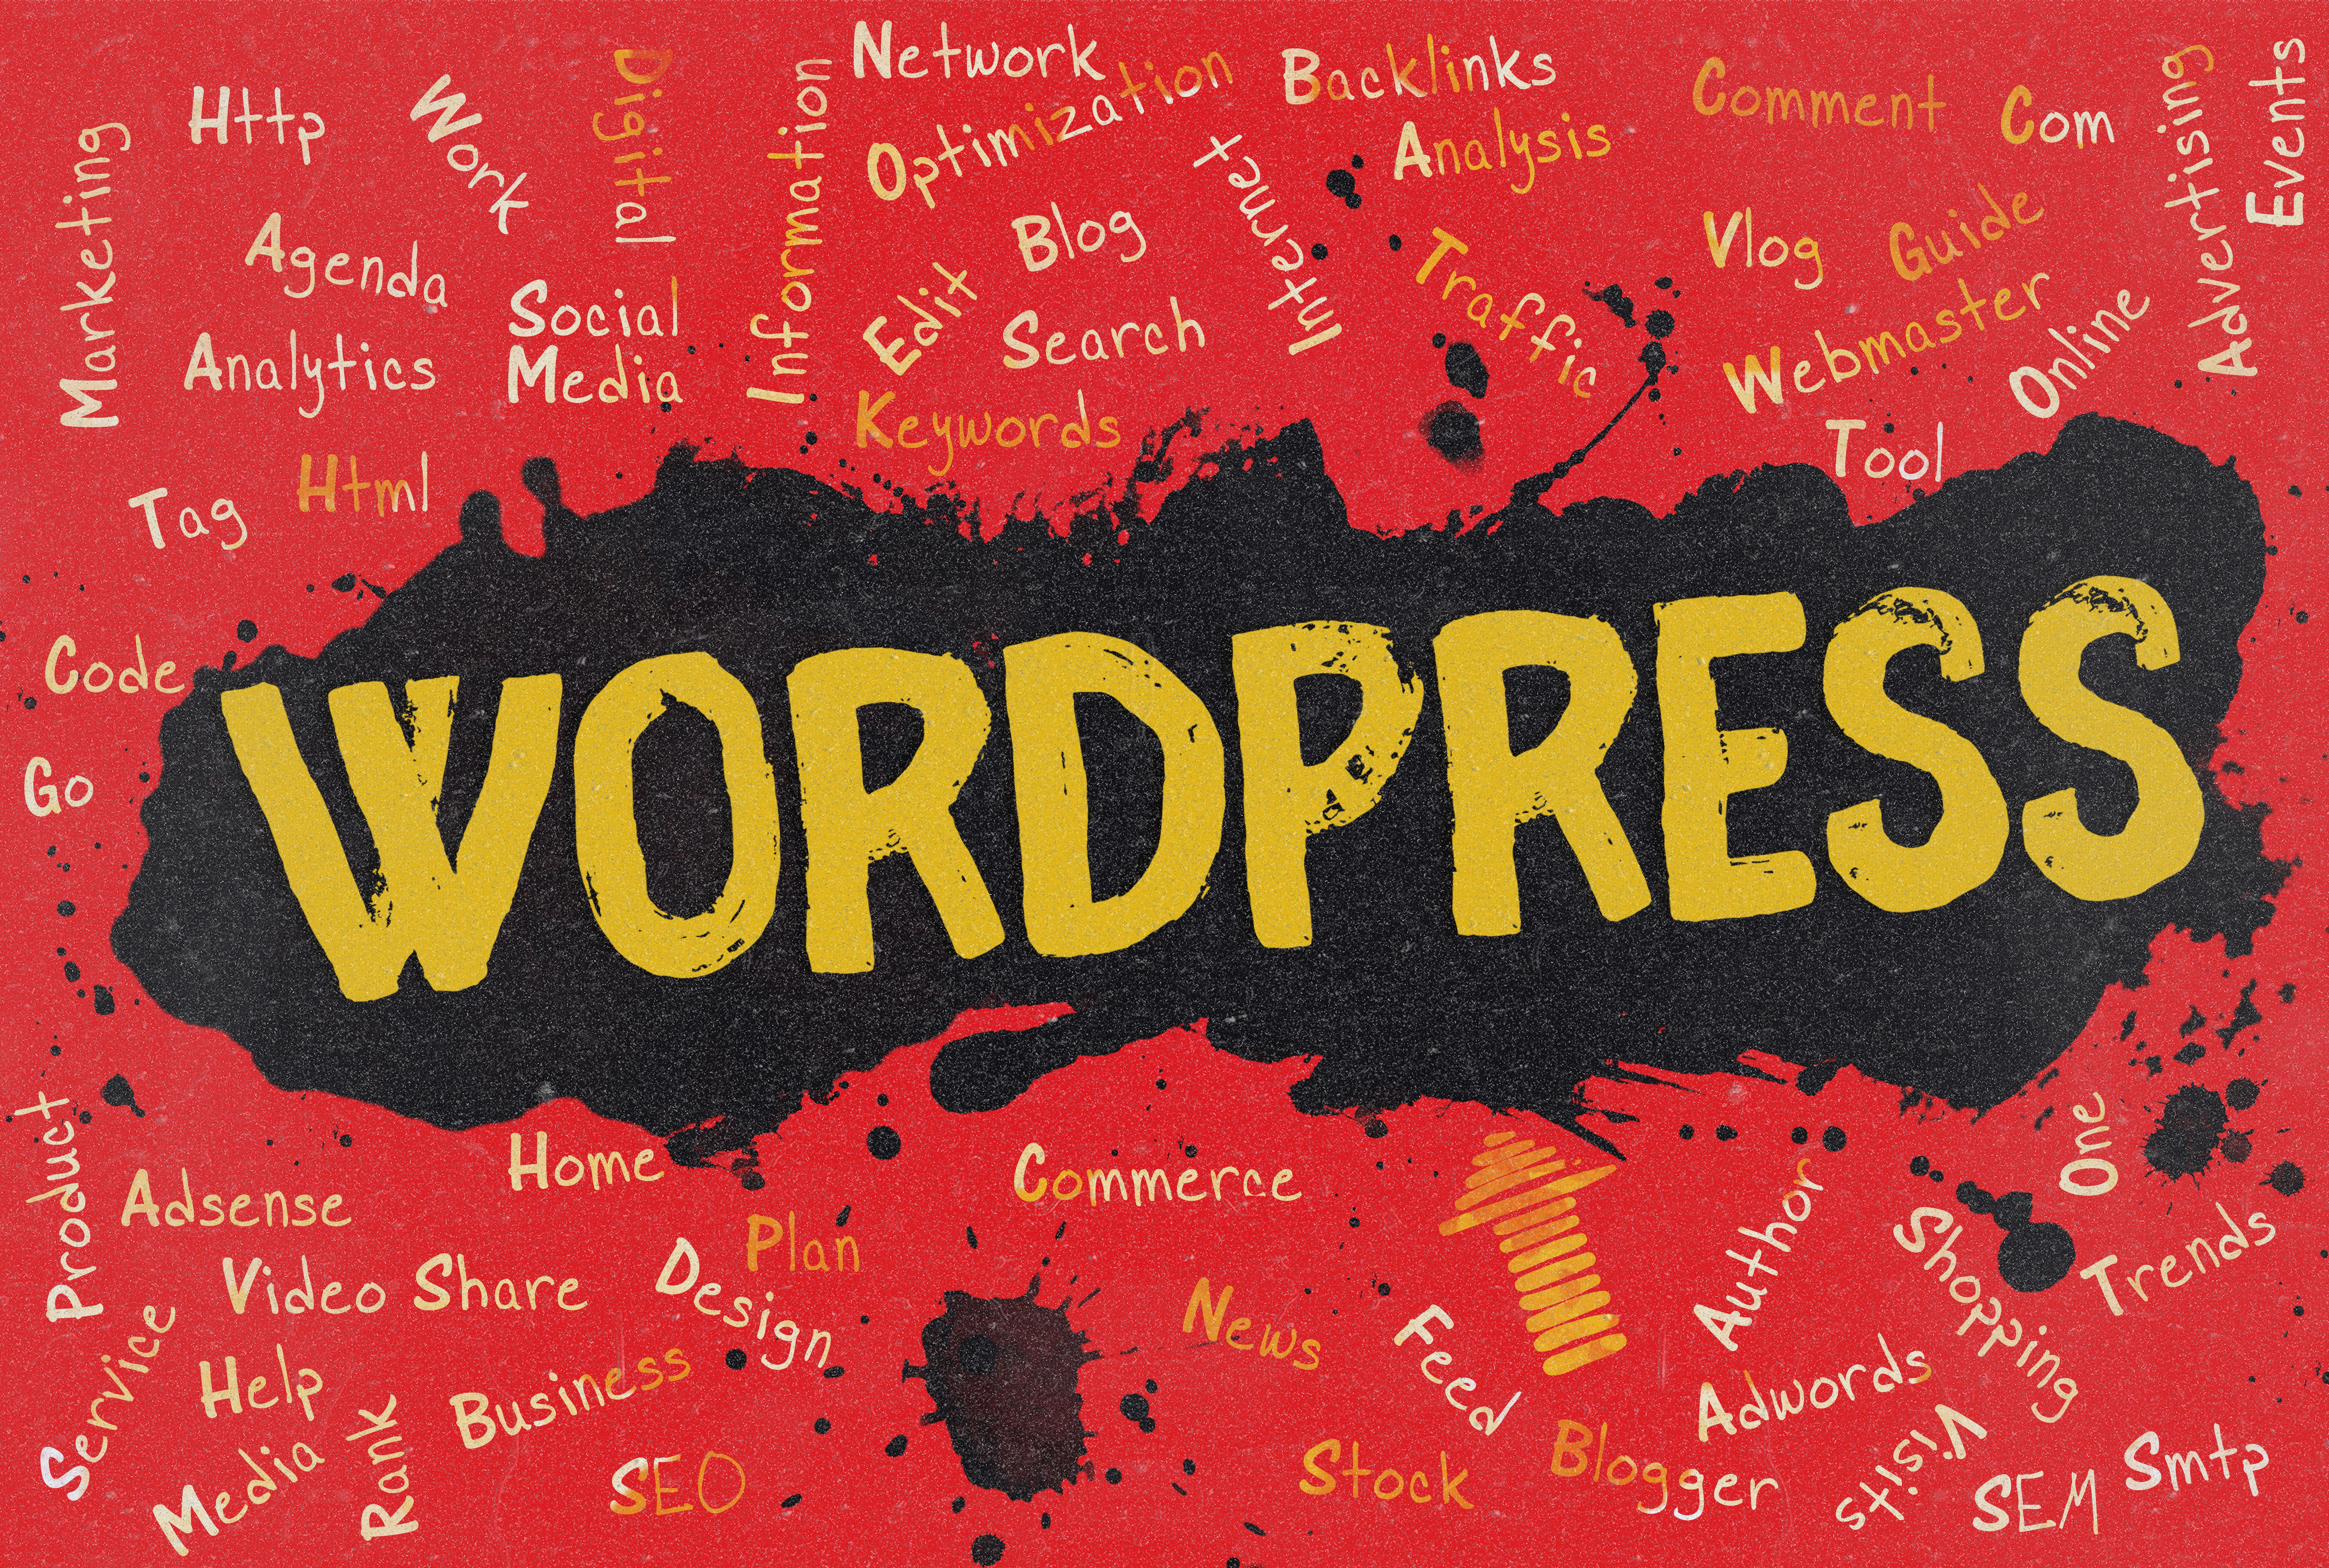 What kinds of websites can be built on WordPress?